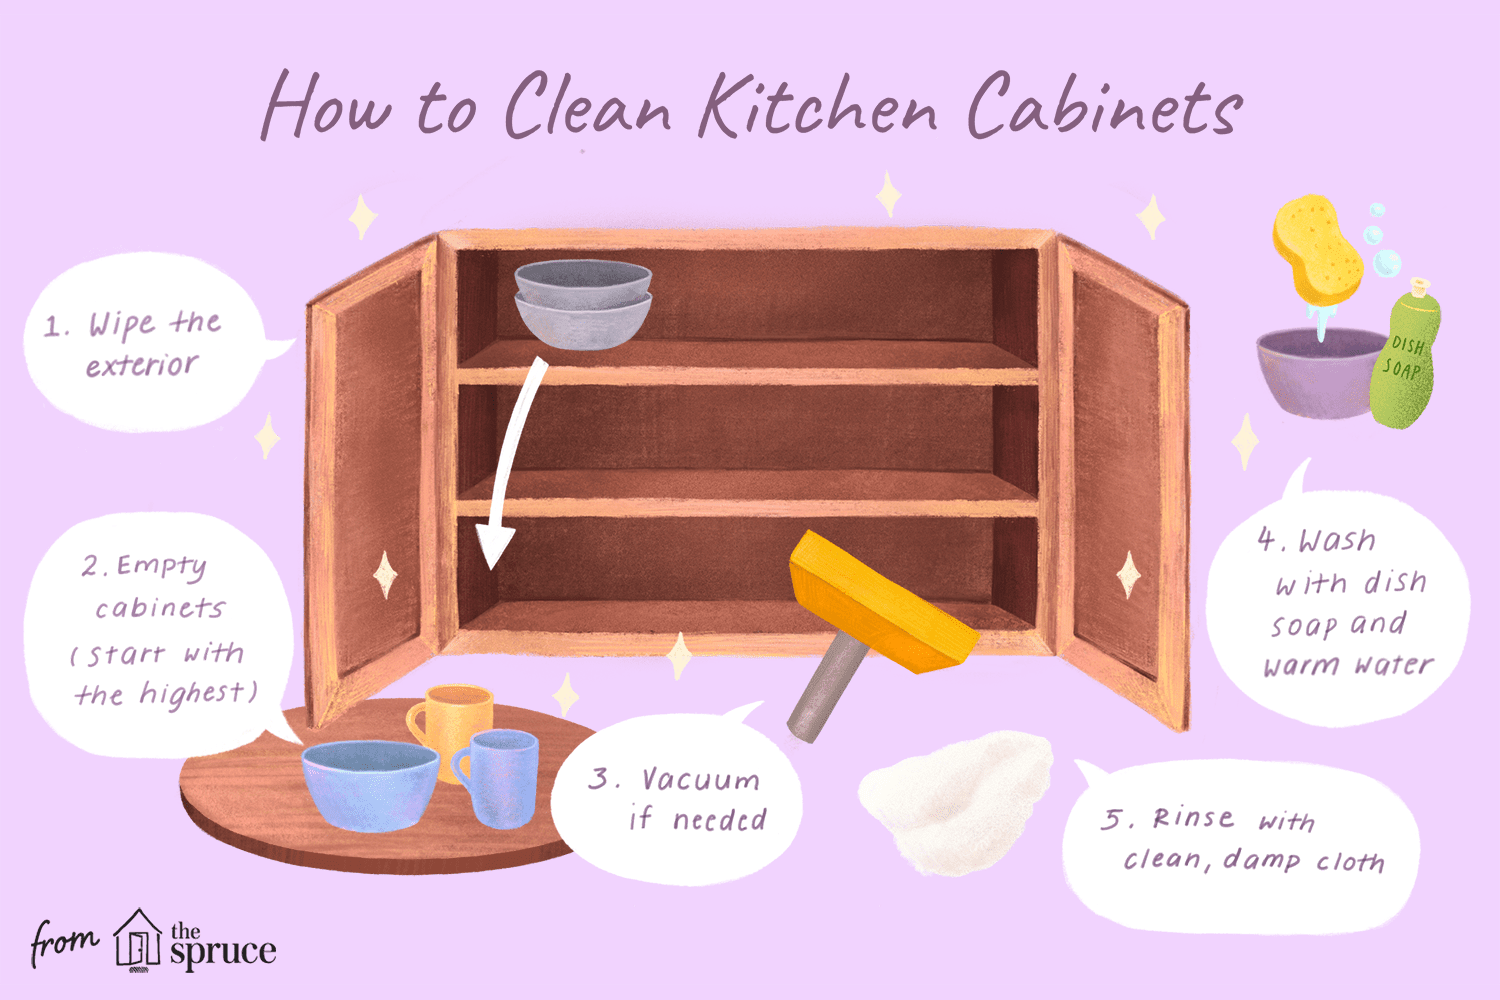 How Often to Clean Kitchen Cabinets